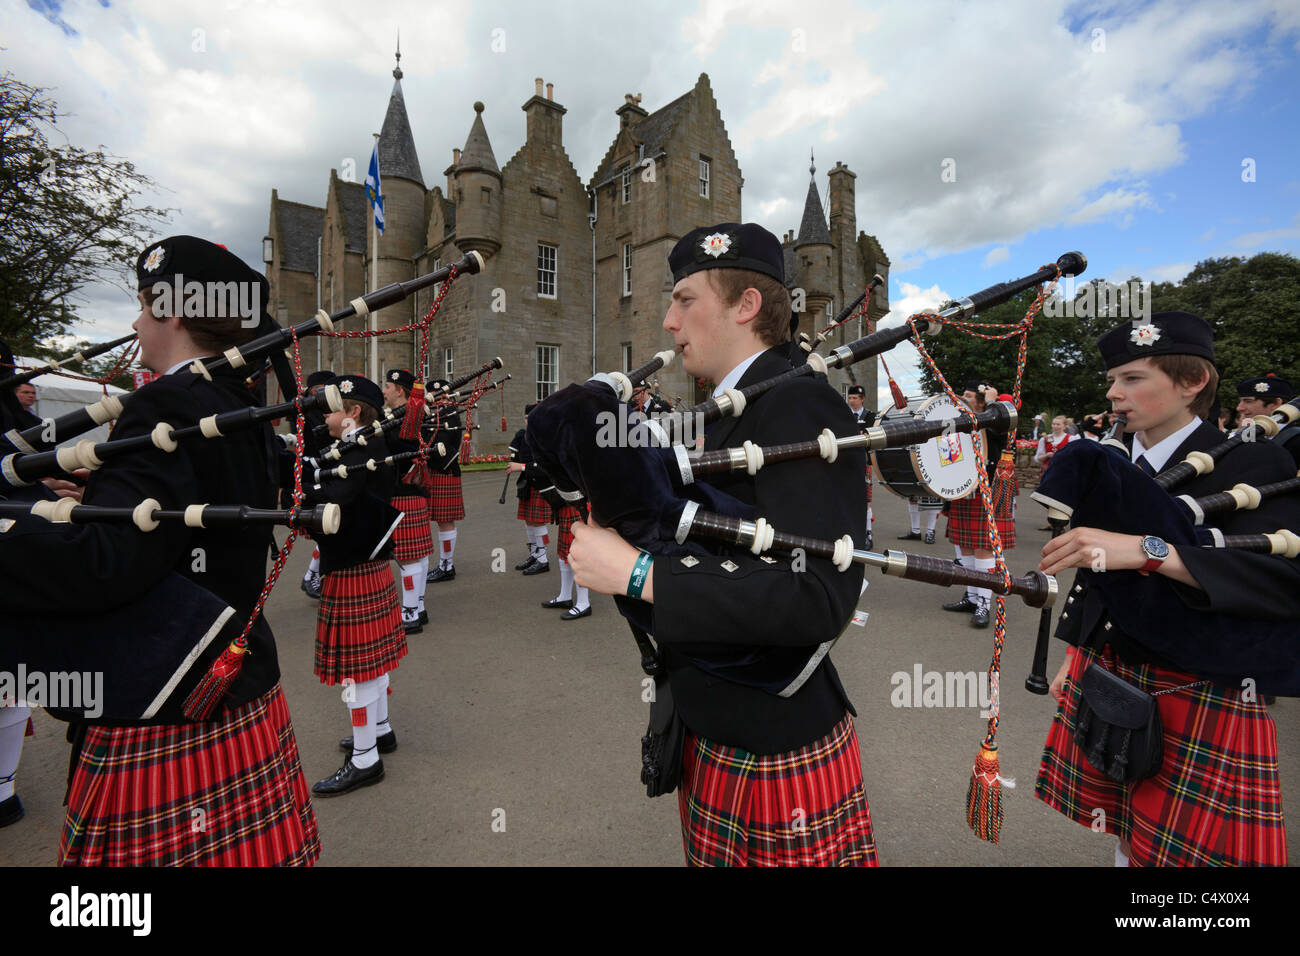 Erskine Stewart's Melville School's pipe band march past the RHASS headquarters building at the Royal Highland - Stock Image